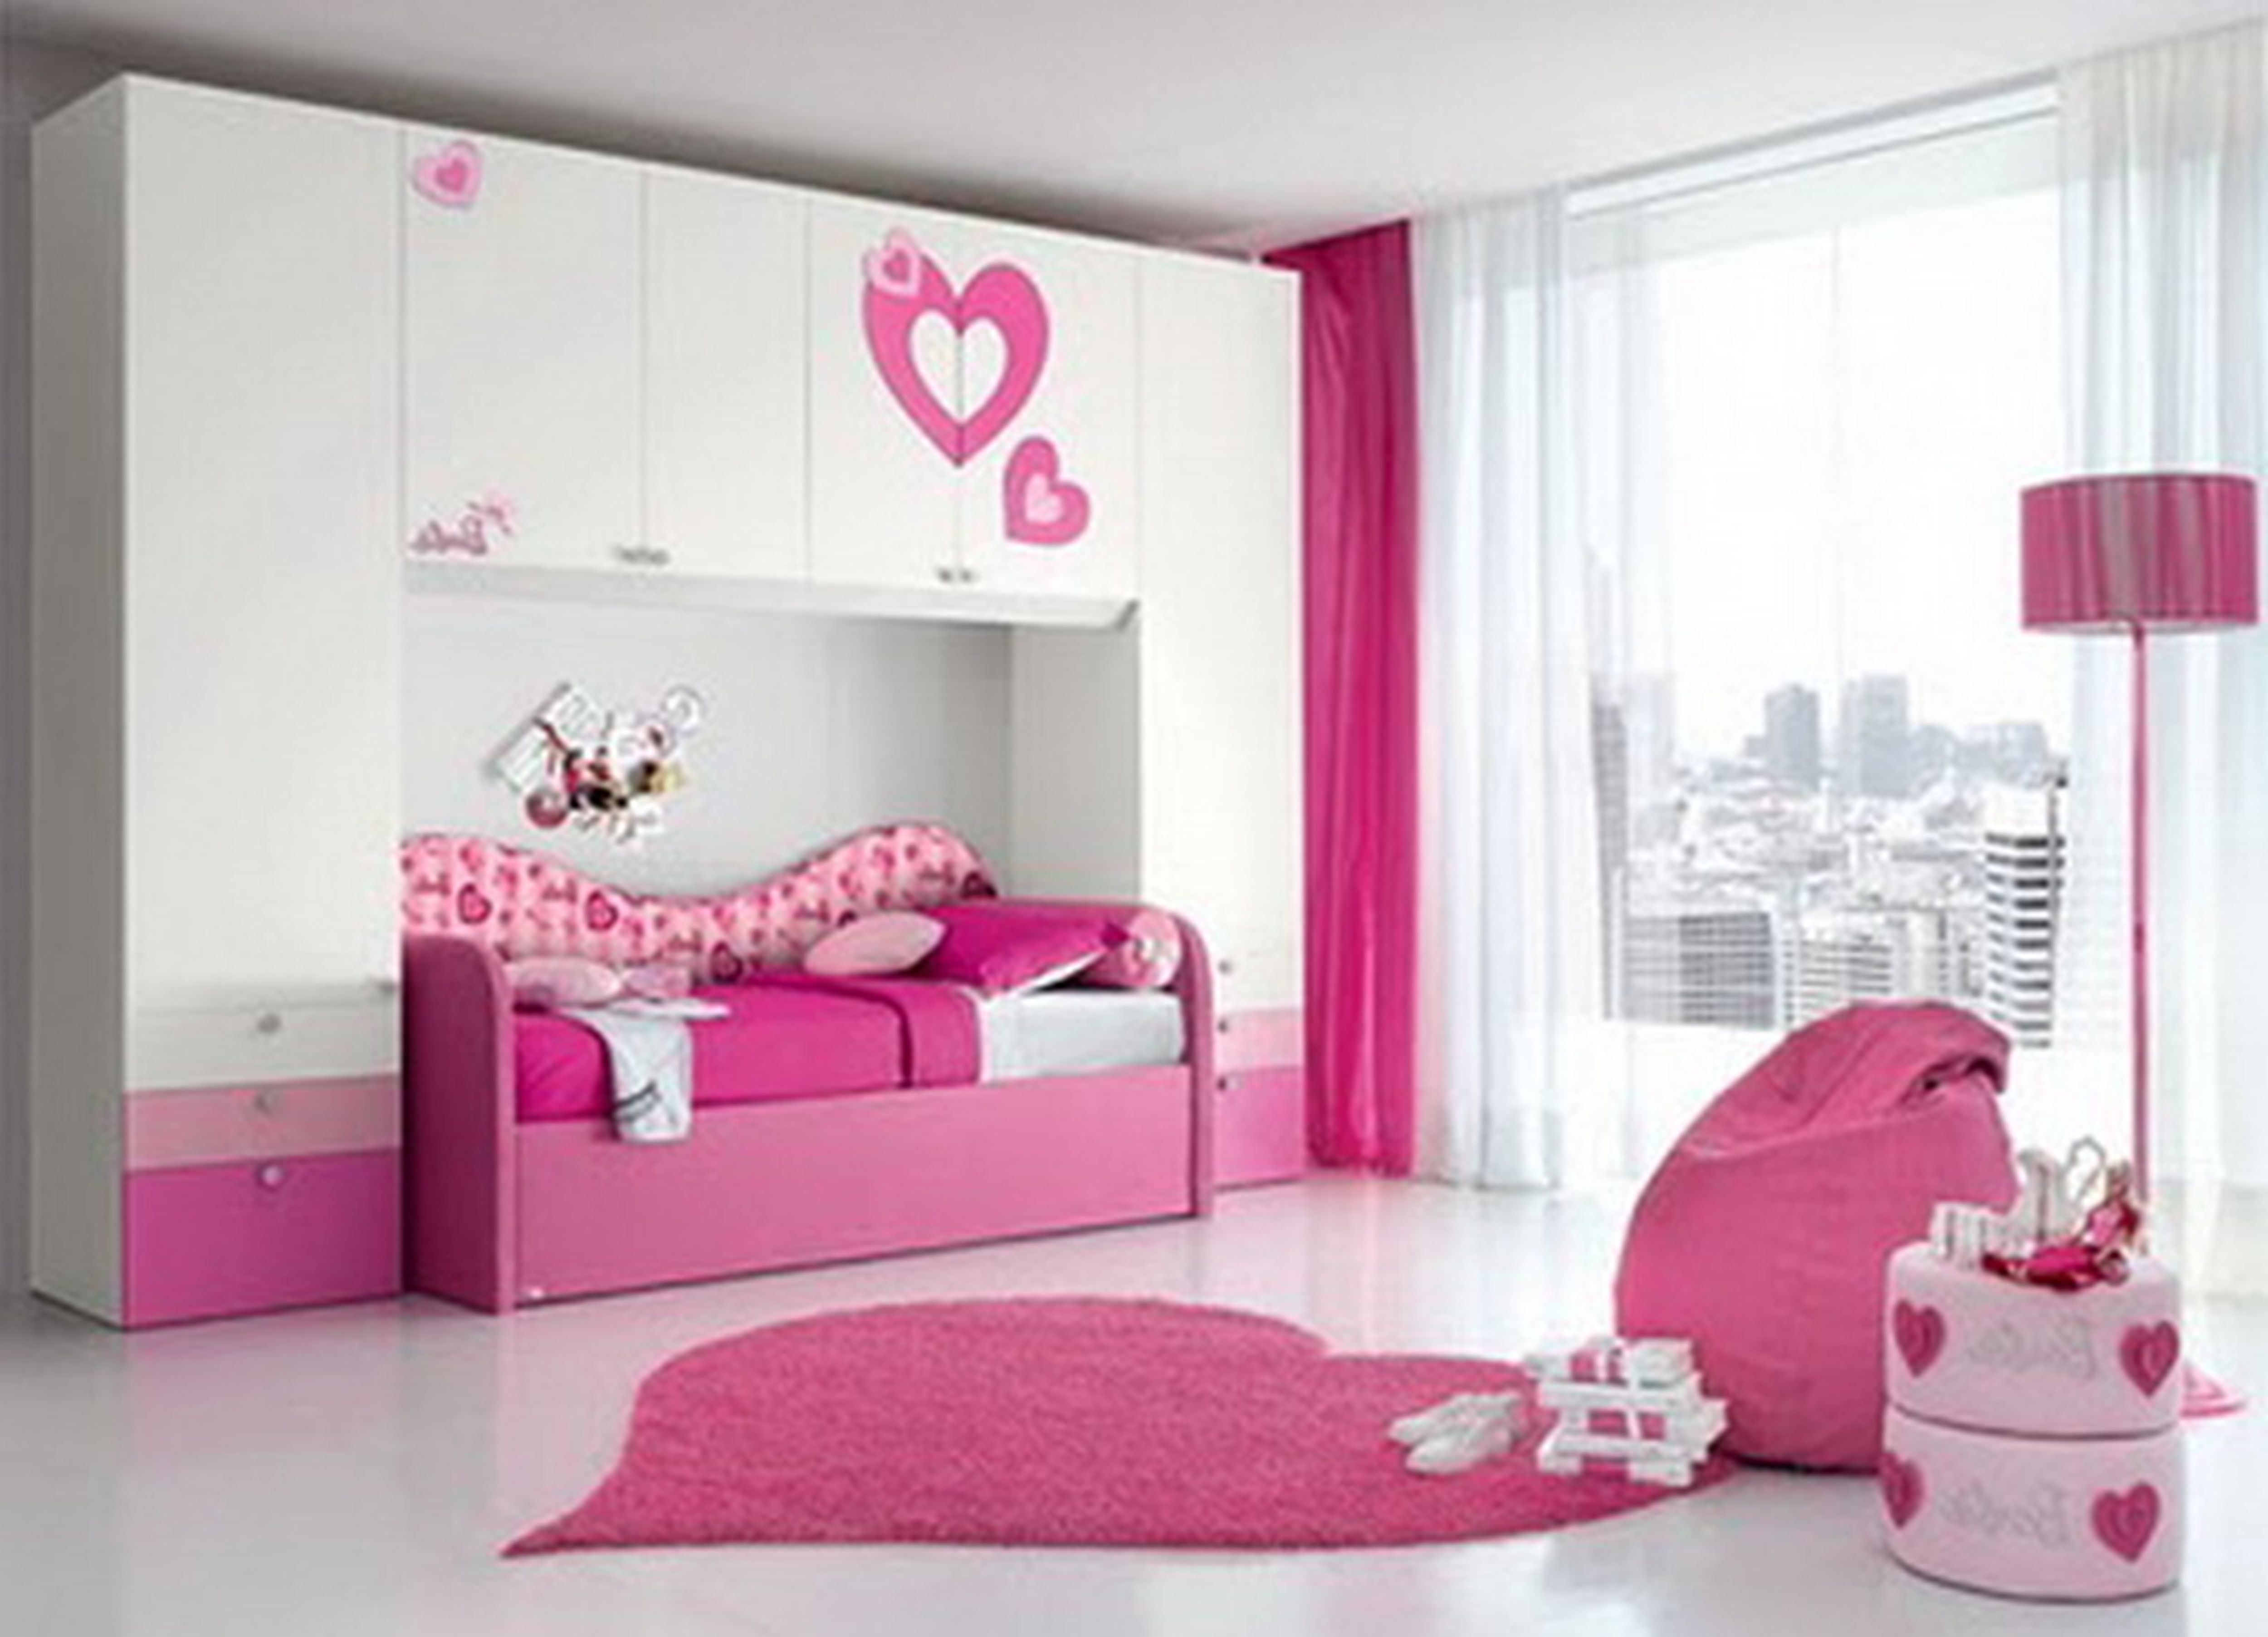 Bedroom Design For Girls Pink Modern Ideas With White Upper Cabinets And Single Beds Also White Wall Using Barbie Bedroom Girls Room Design Girl Bedroom Decor